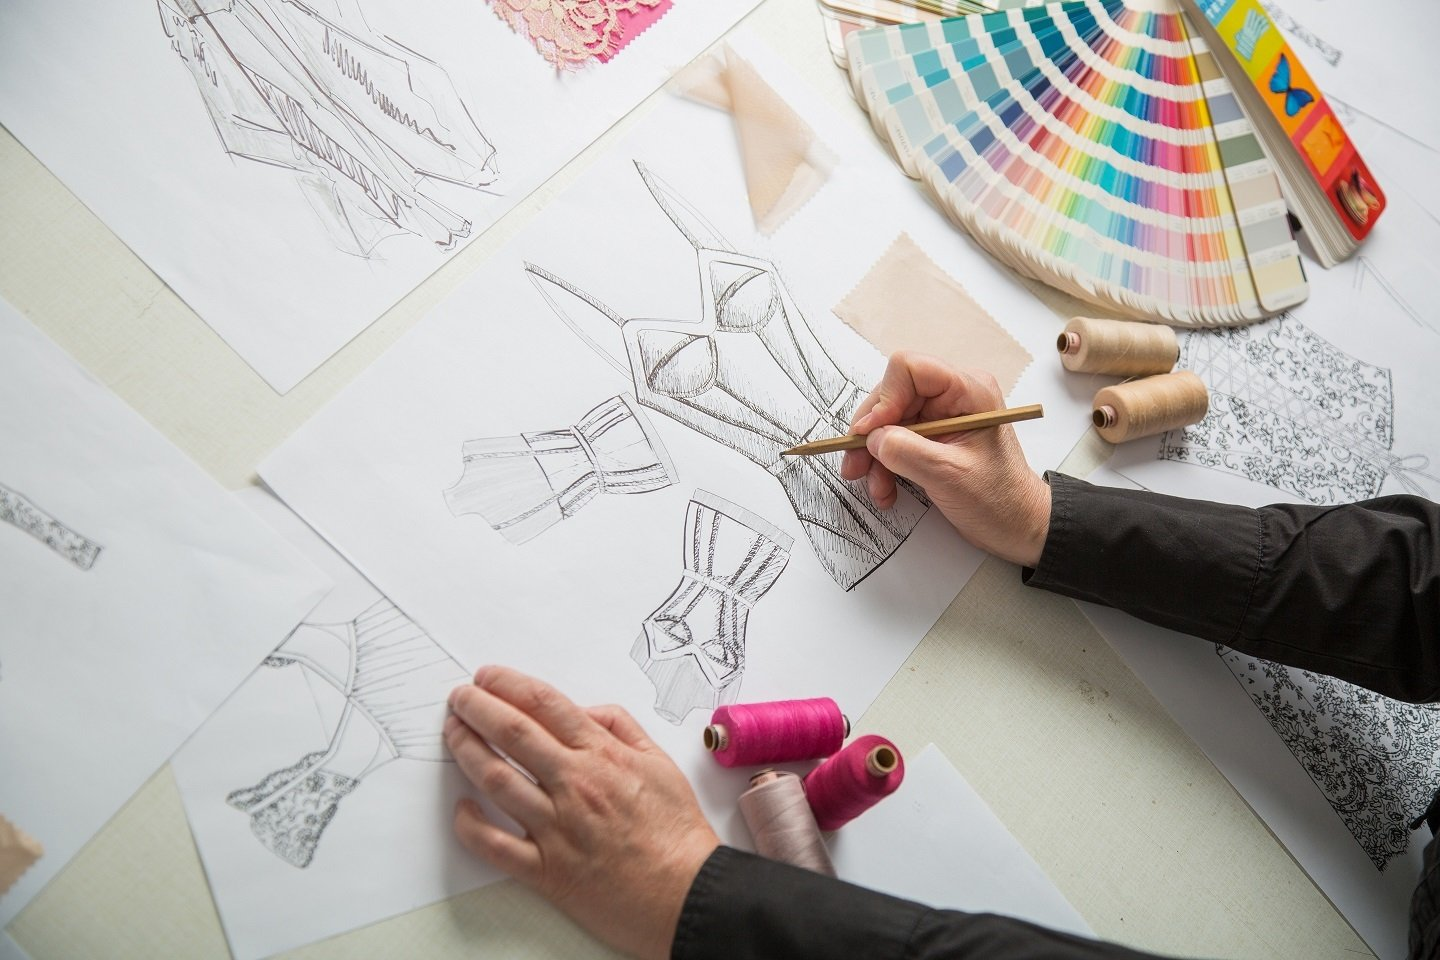 Rankings and Profiles of Fashion Design and Fashion 58